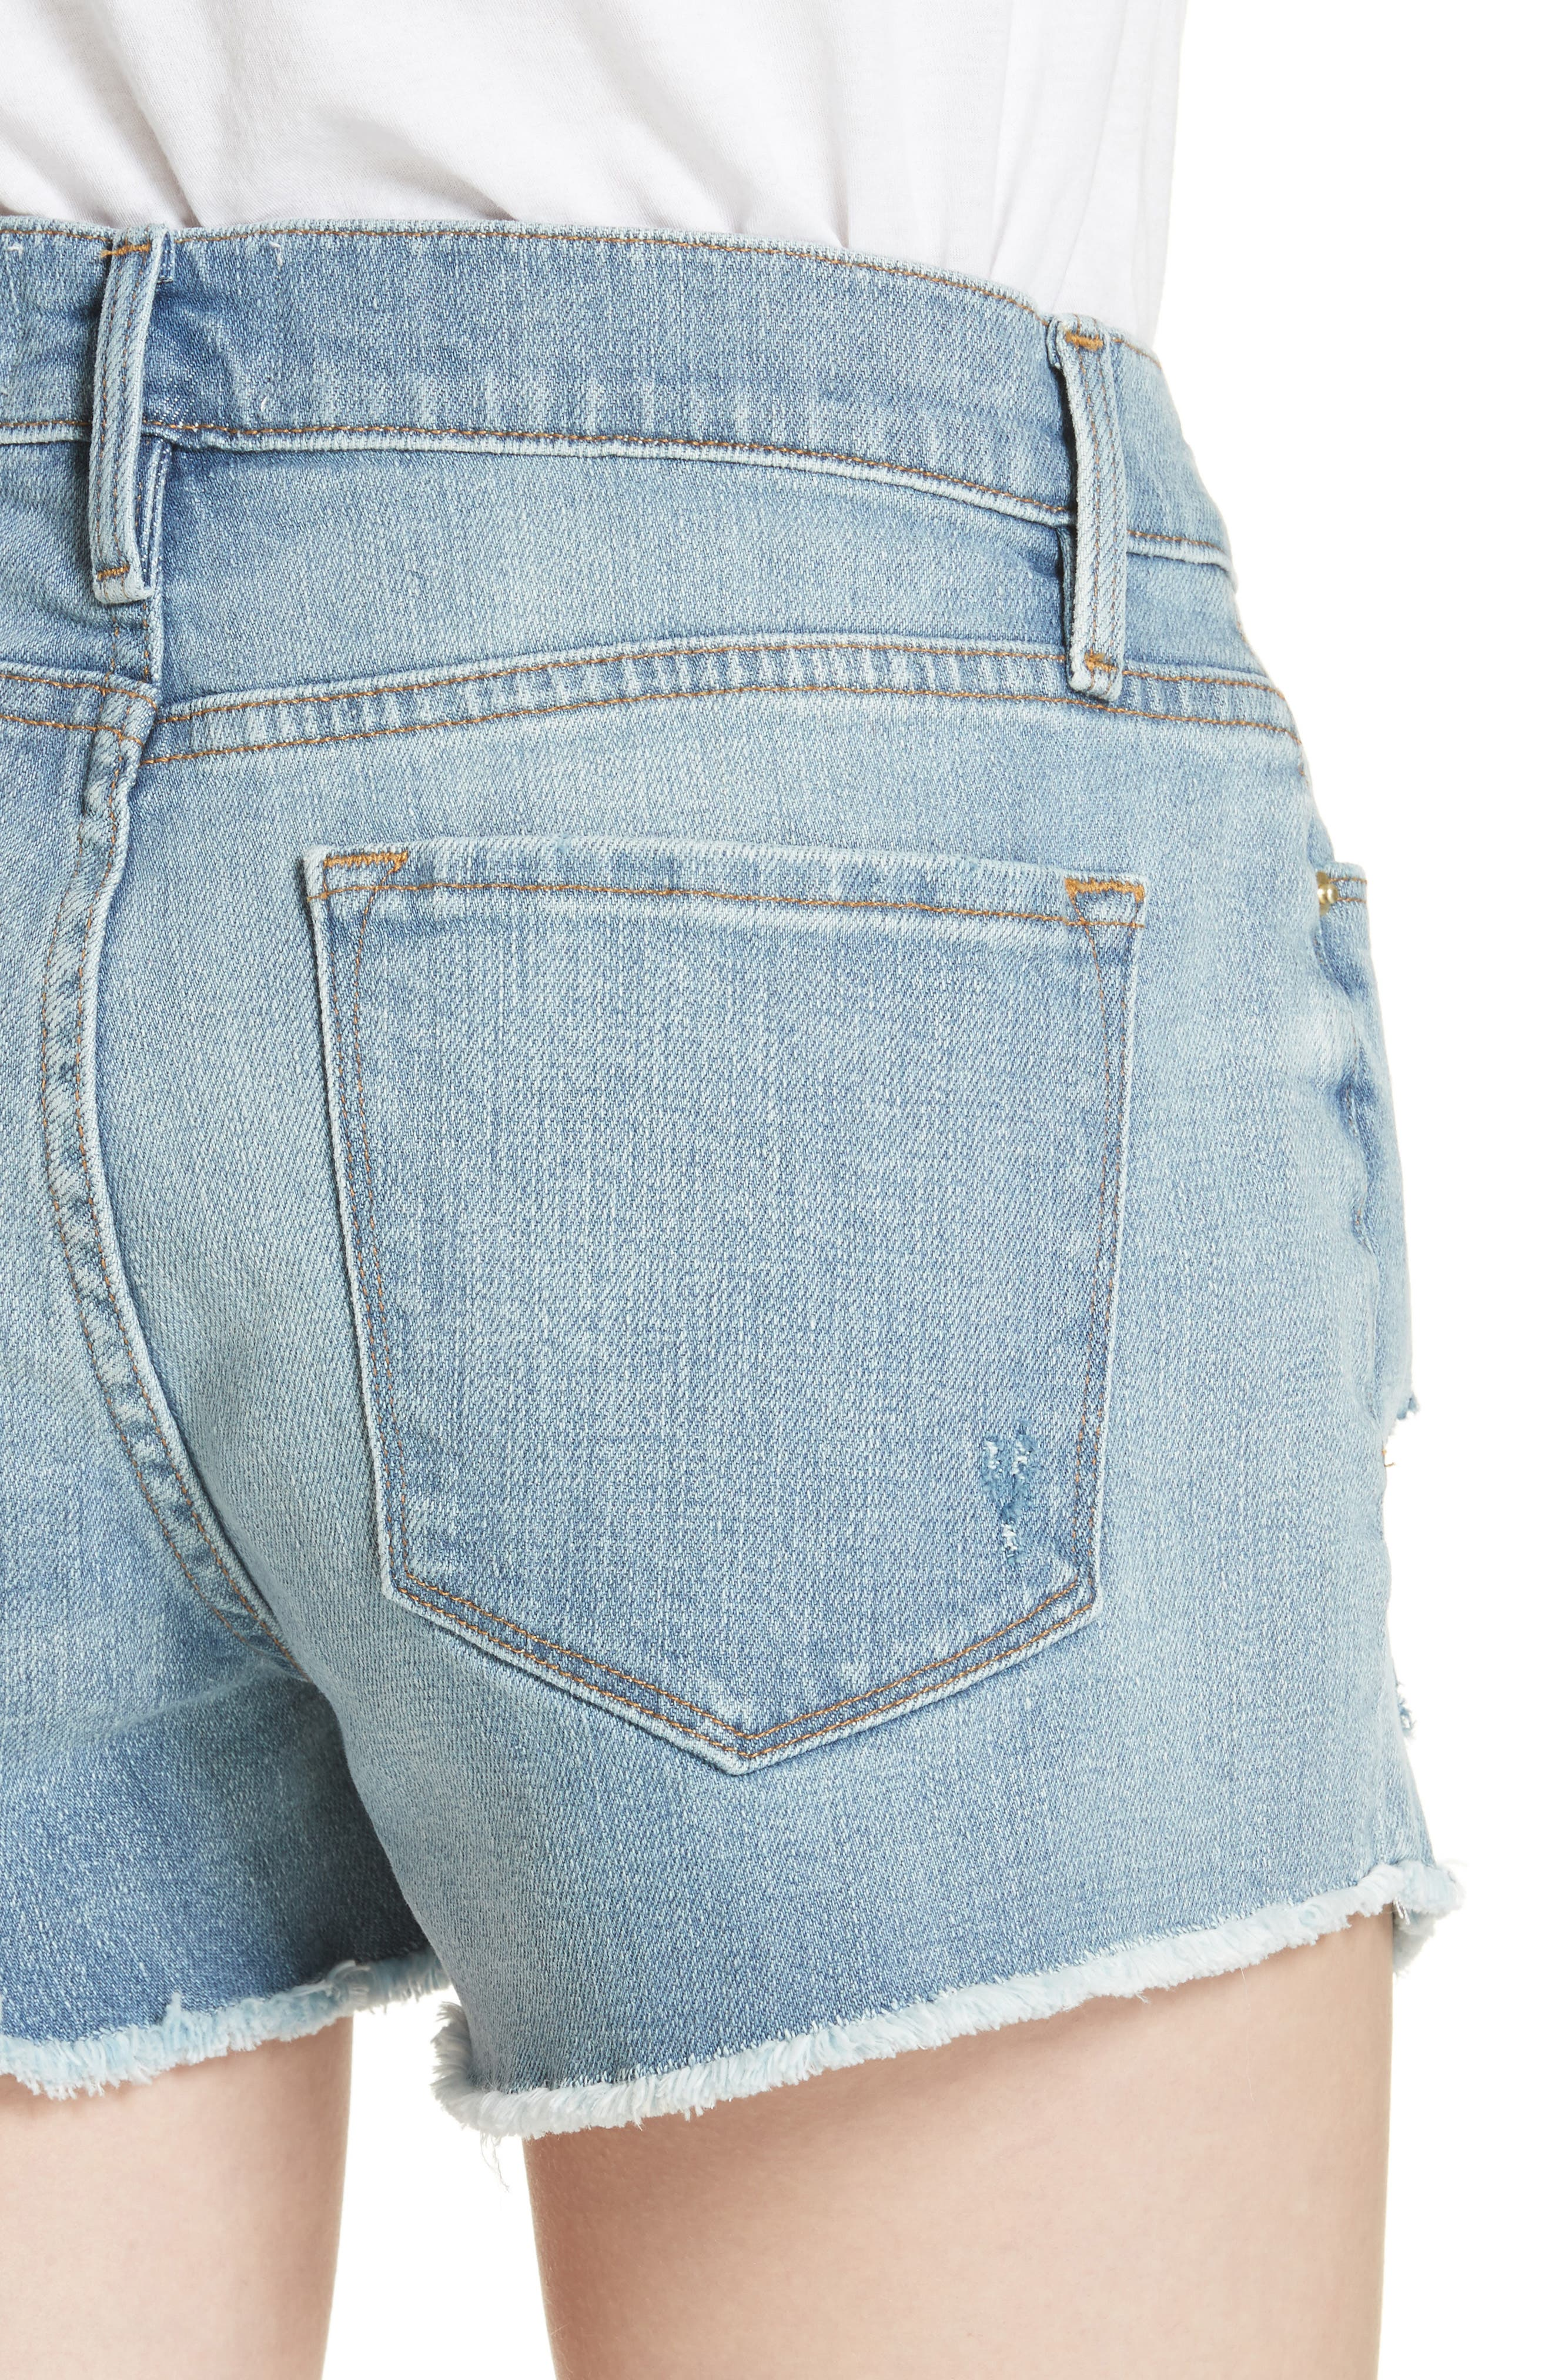 Le Cutoff Denim Shorts,                             Alternate thumbnail 4, color,                             TAFFORD